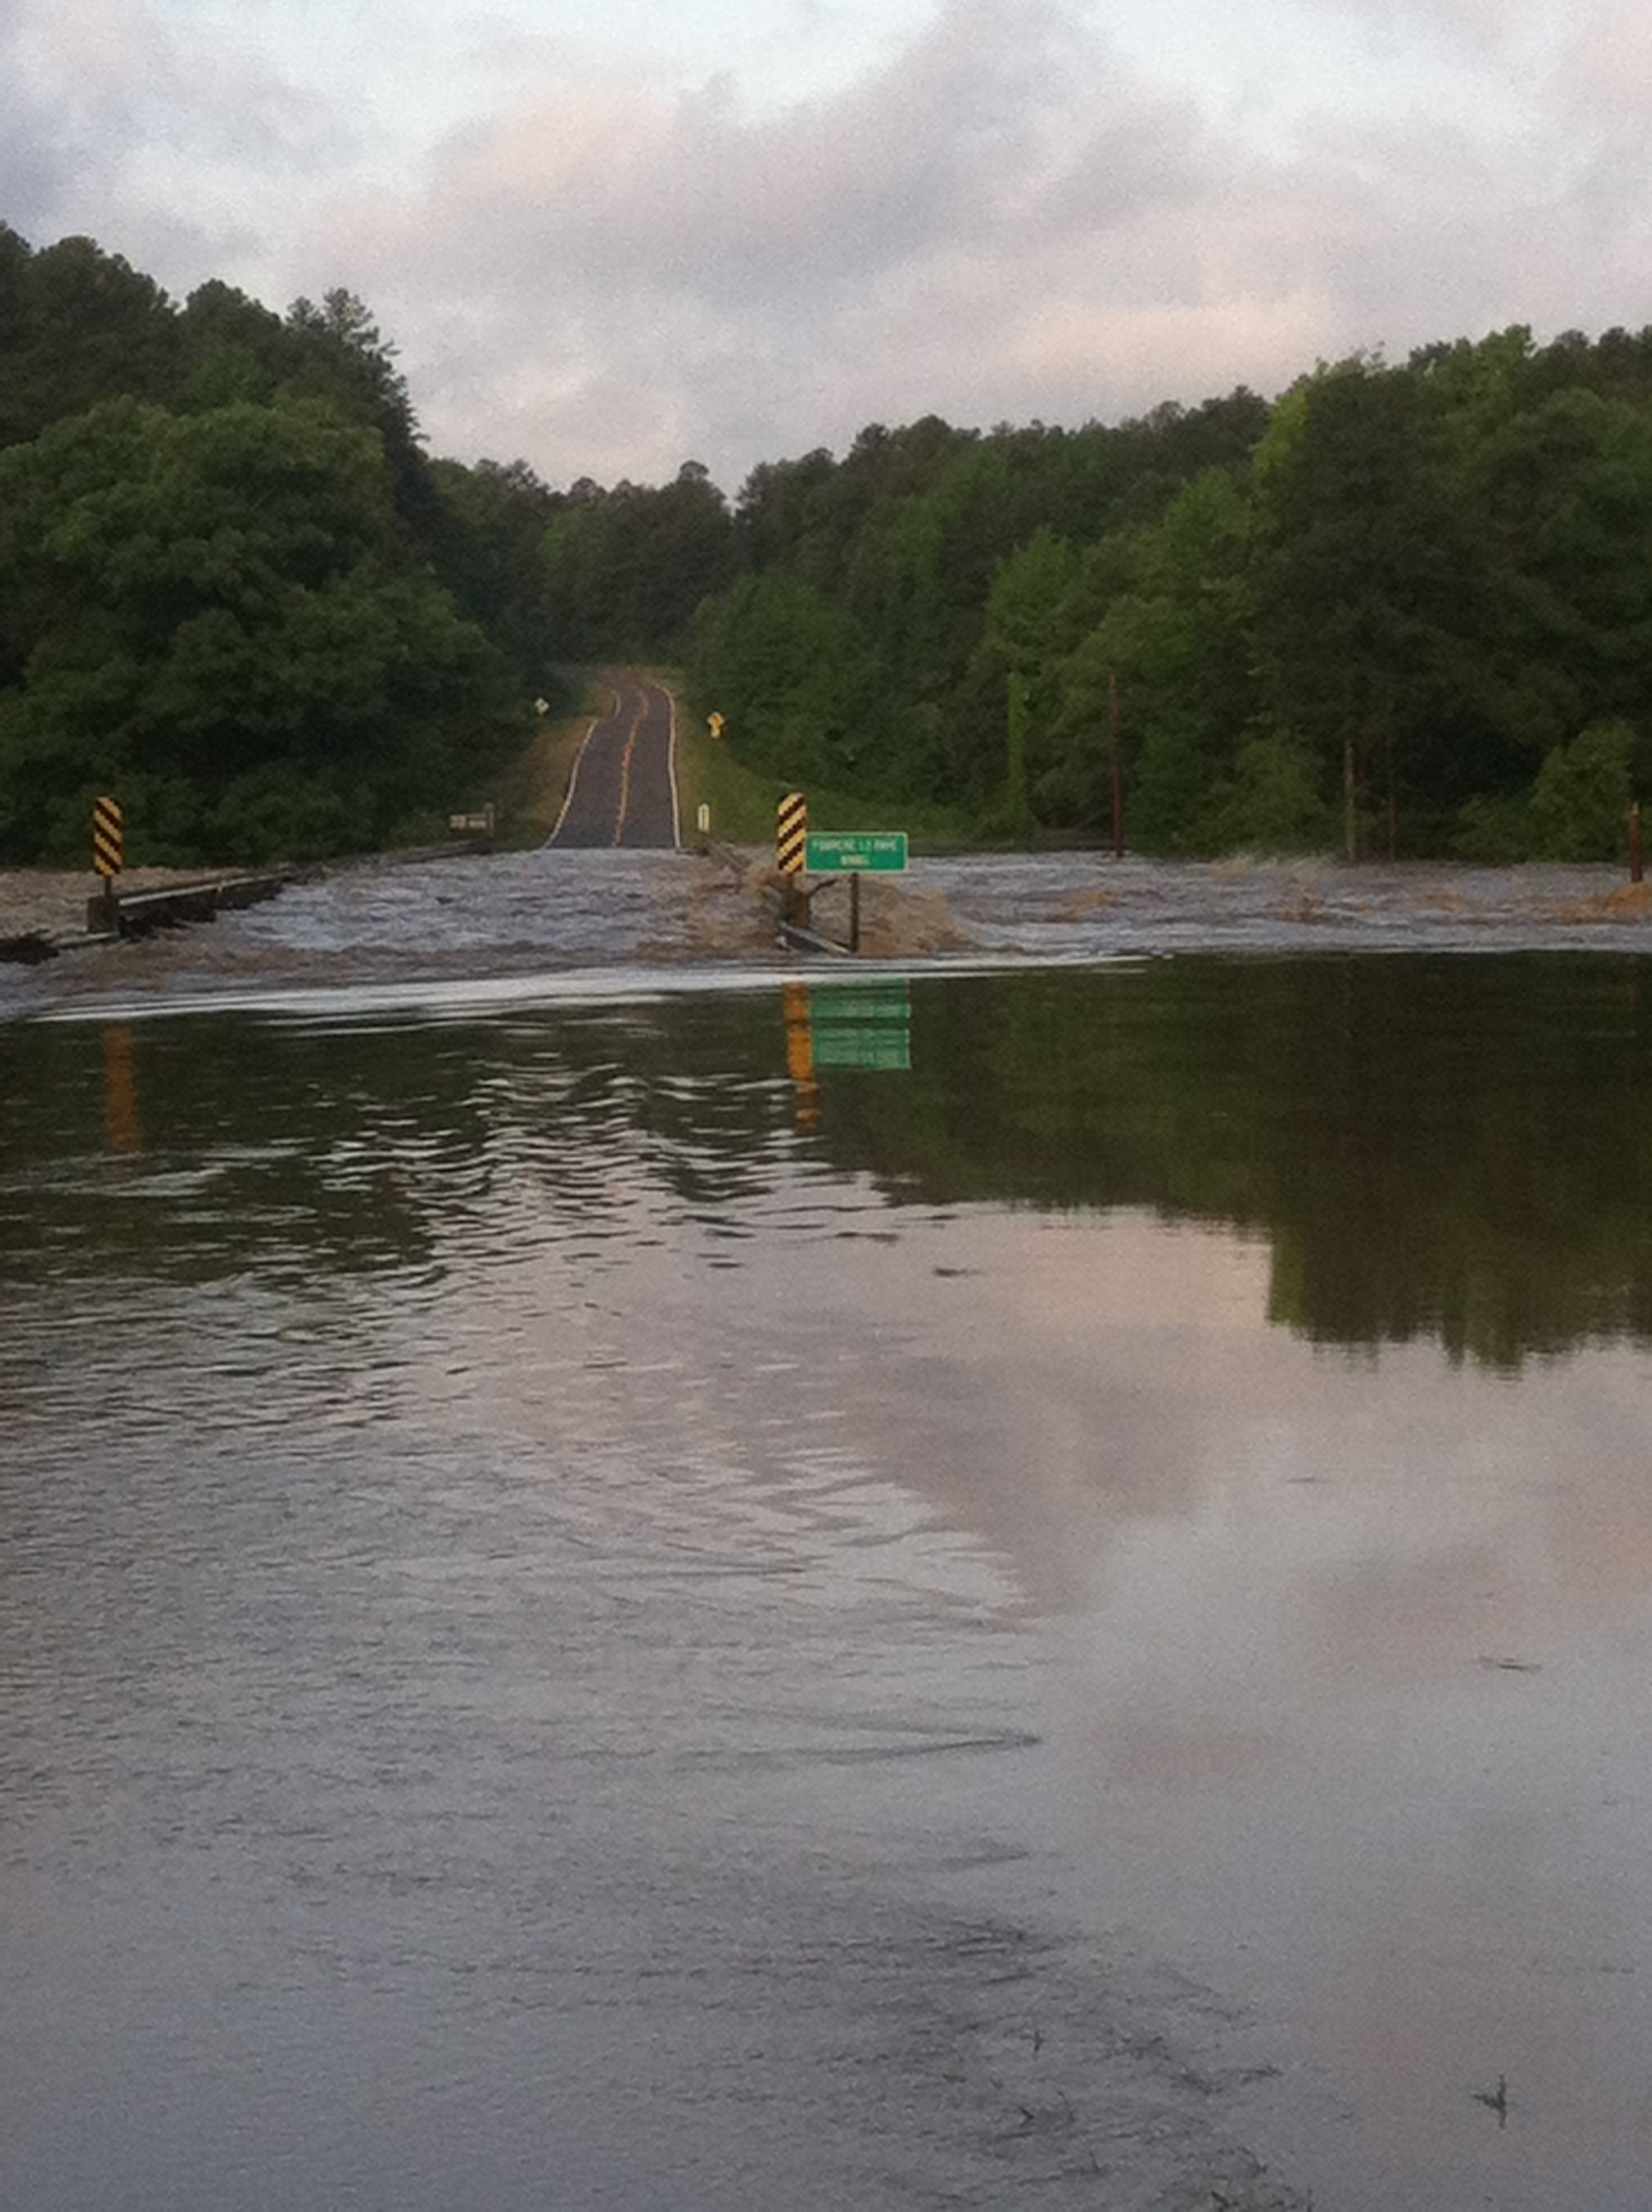 Highway 28 Fouche River near Harvey from Aaron Allen